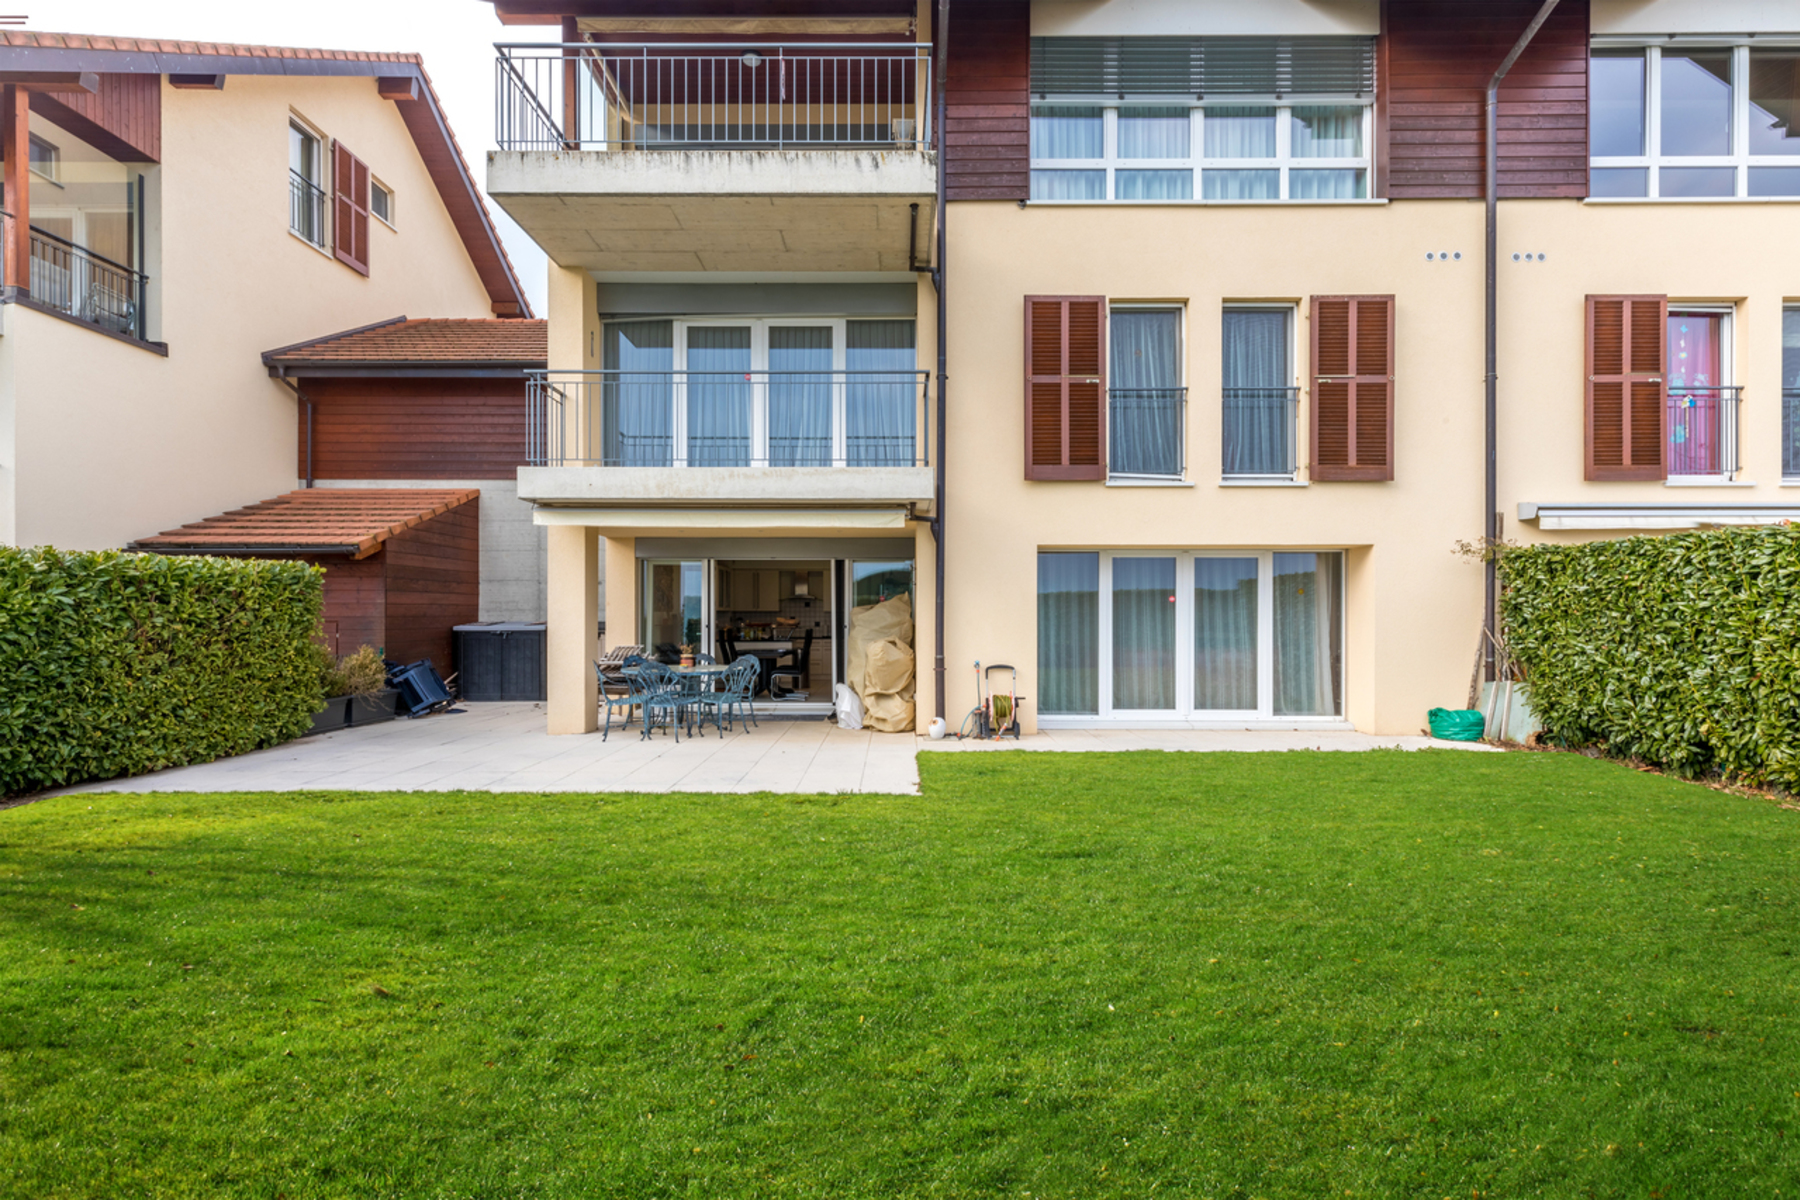 Duplex for Sale at 5.5 room townhouse for a comfortable family life! Genolier, Genolier, Vaud, 1272 Switzerland